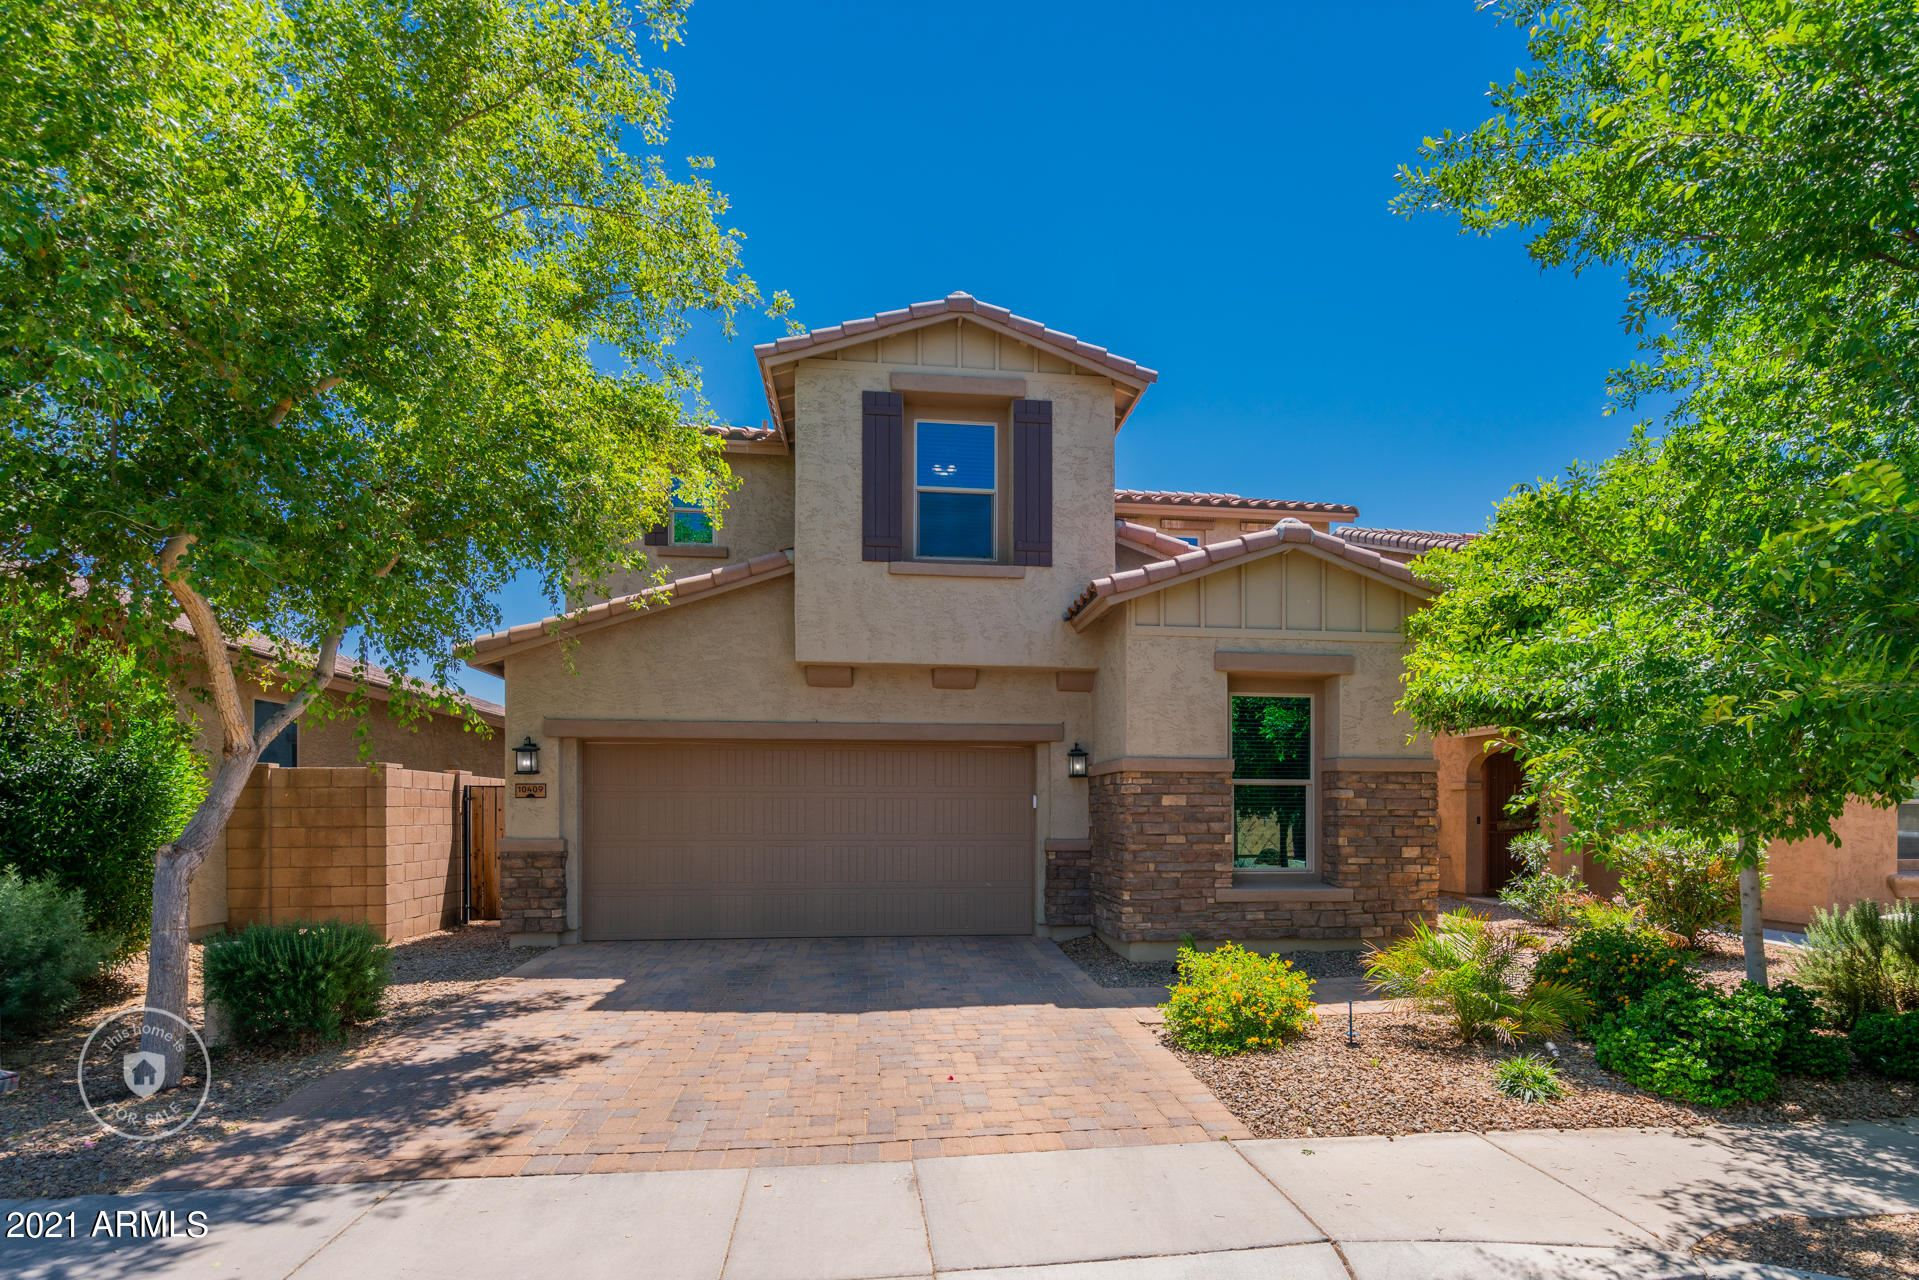 Photo of 10409 W HAMMOND Lane, Tolleson, AZ 85353 (MLS # 6226863)